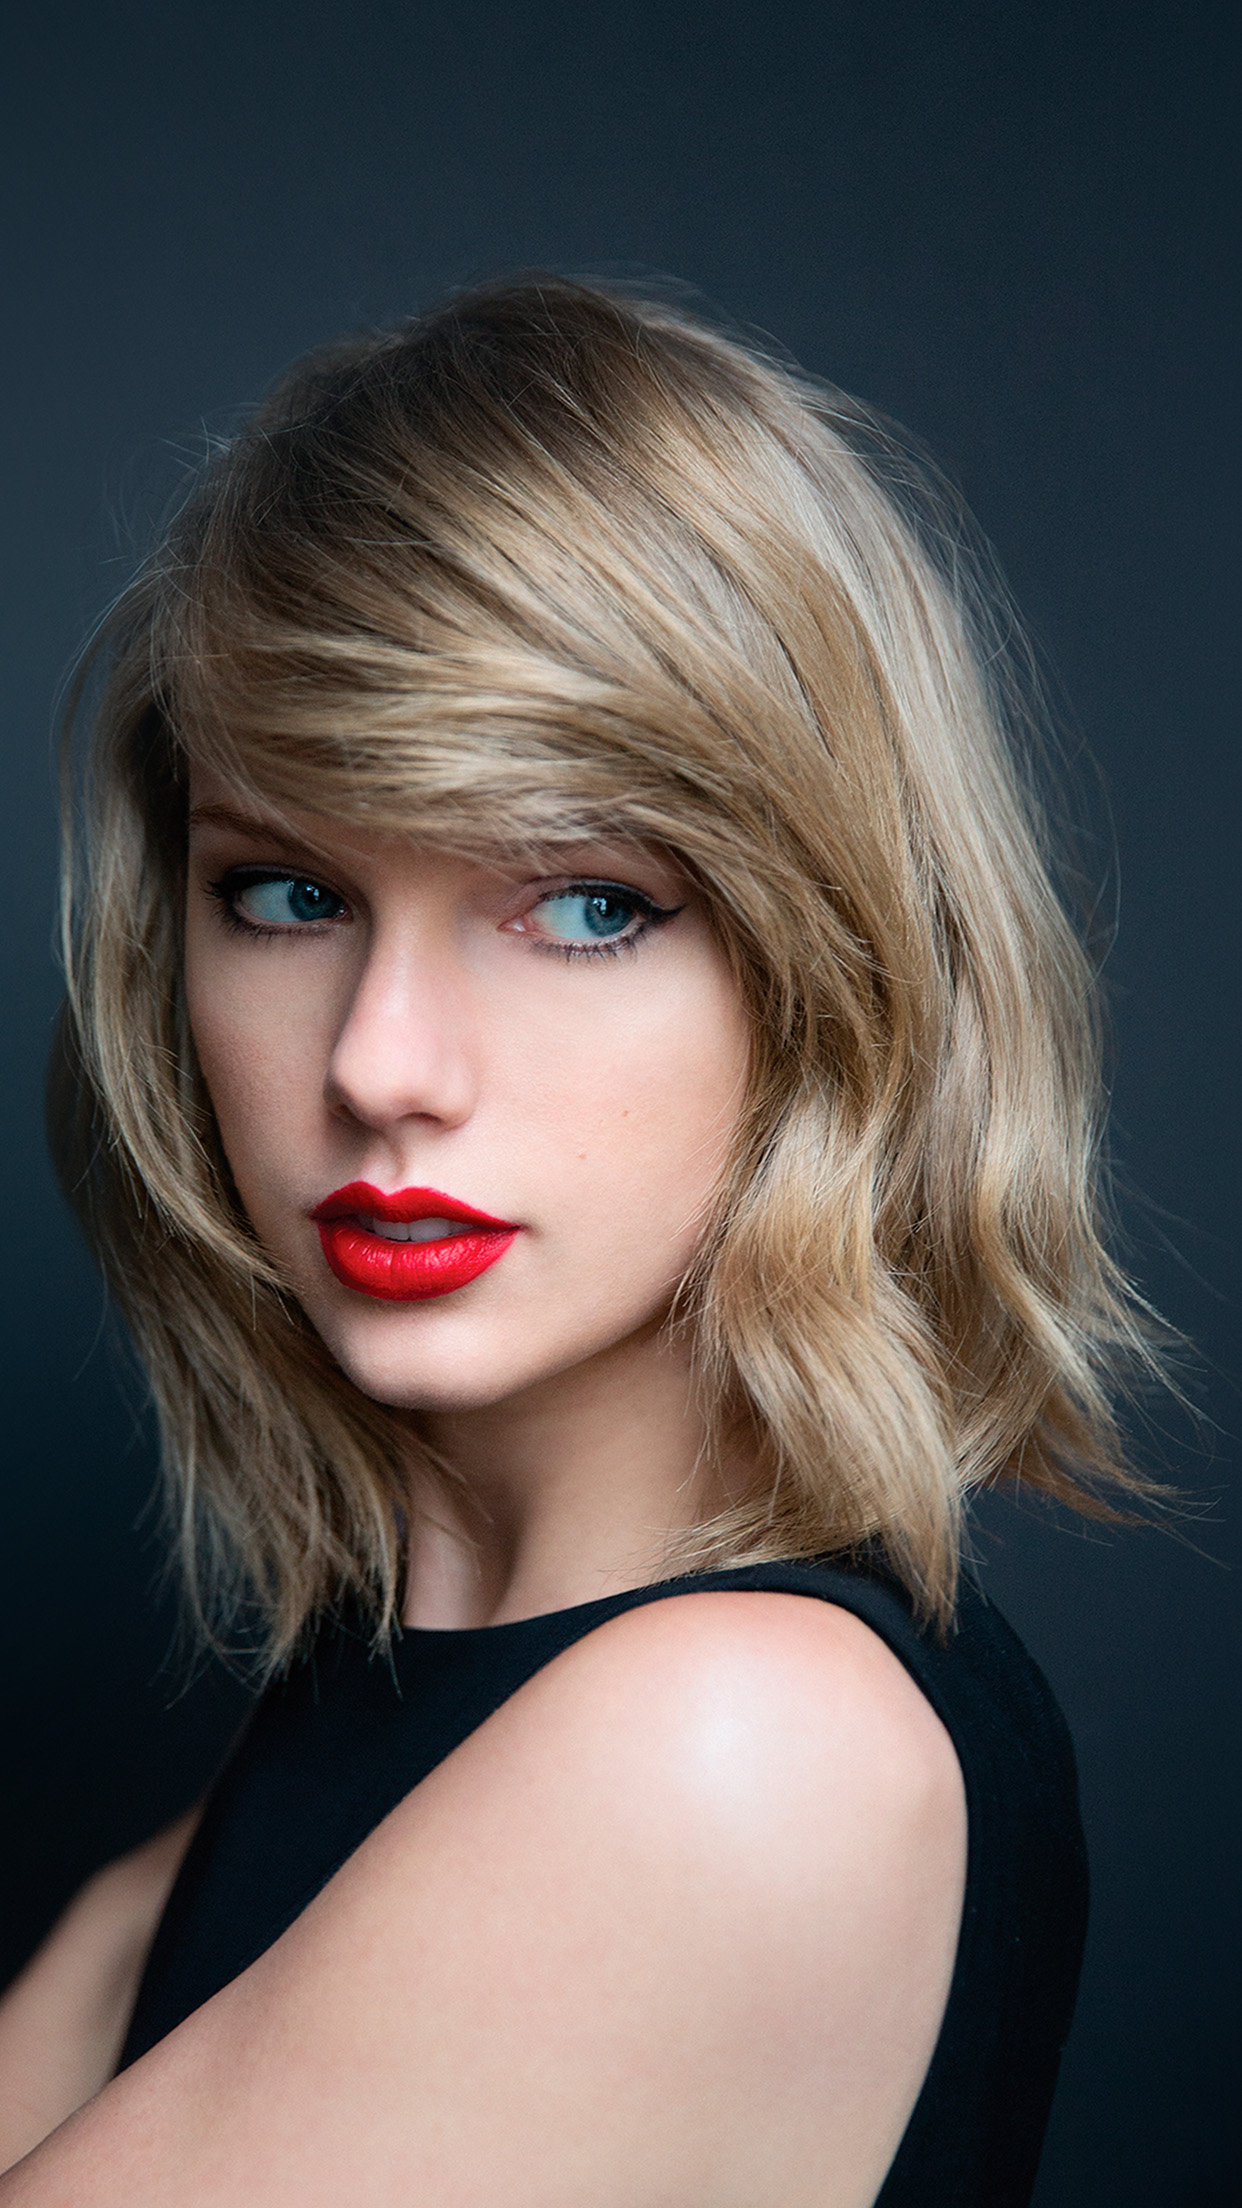 Taylor Swift Artist Celebrity Girl Android Wallpaper